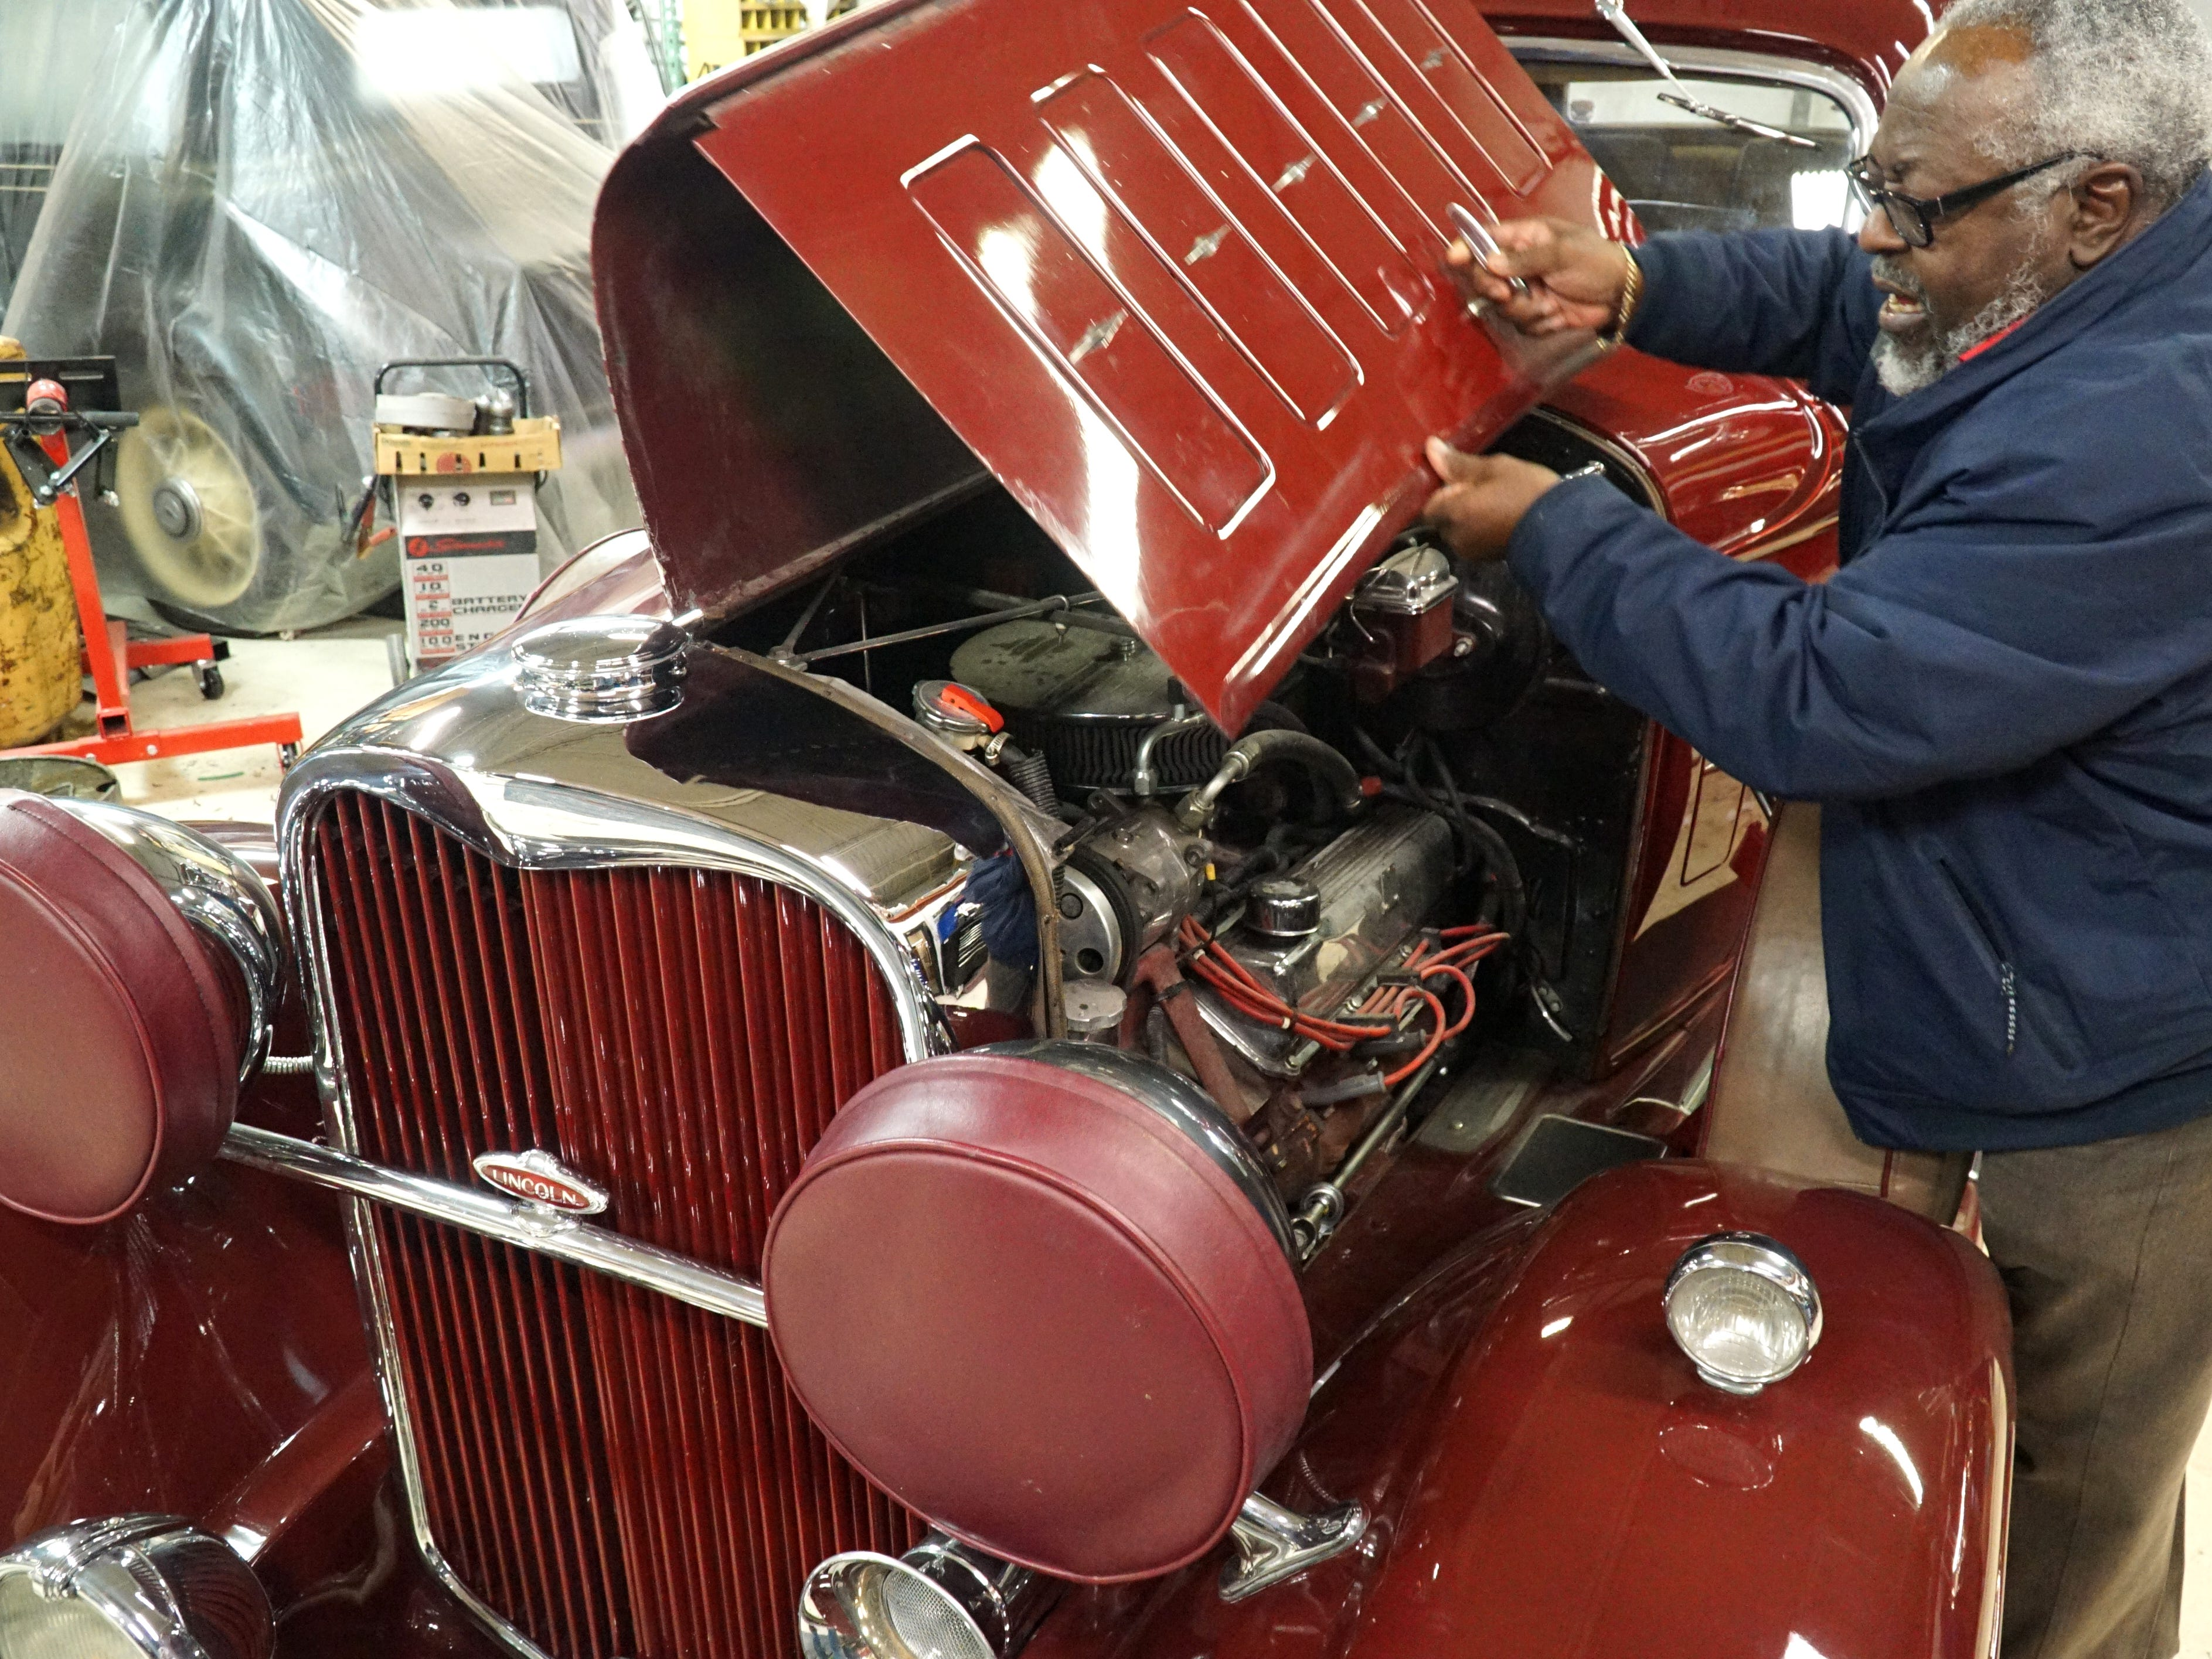 Fred Neal opens up the engine compartment of his '32 Lincoln.